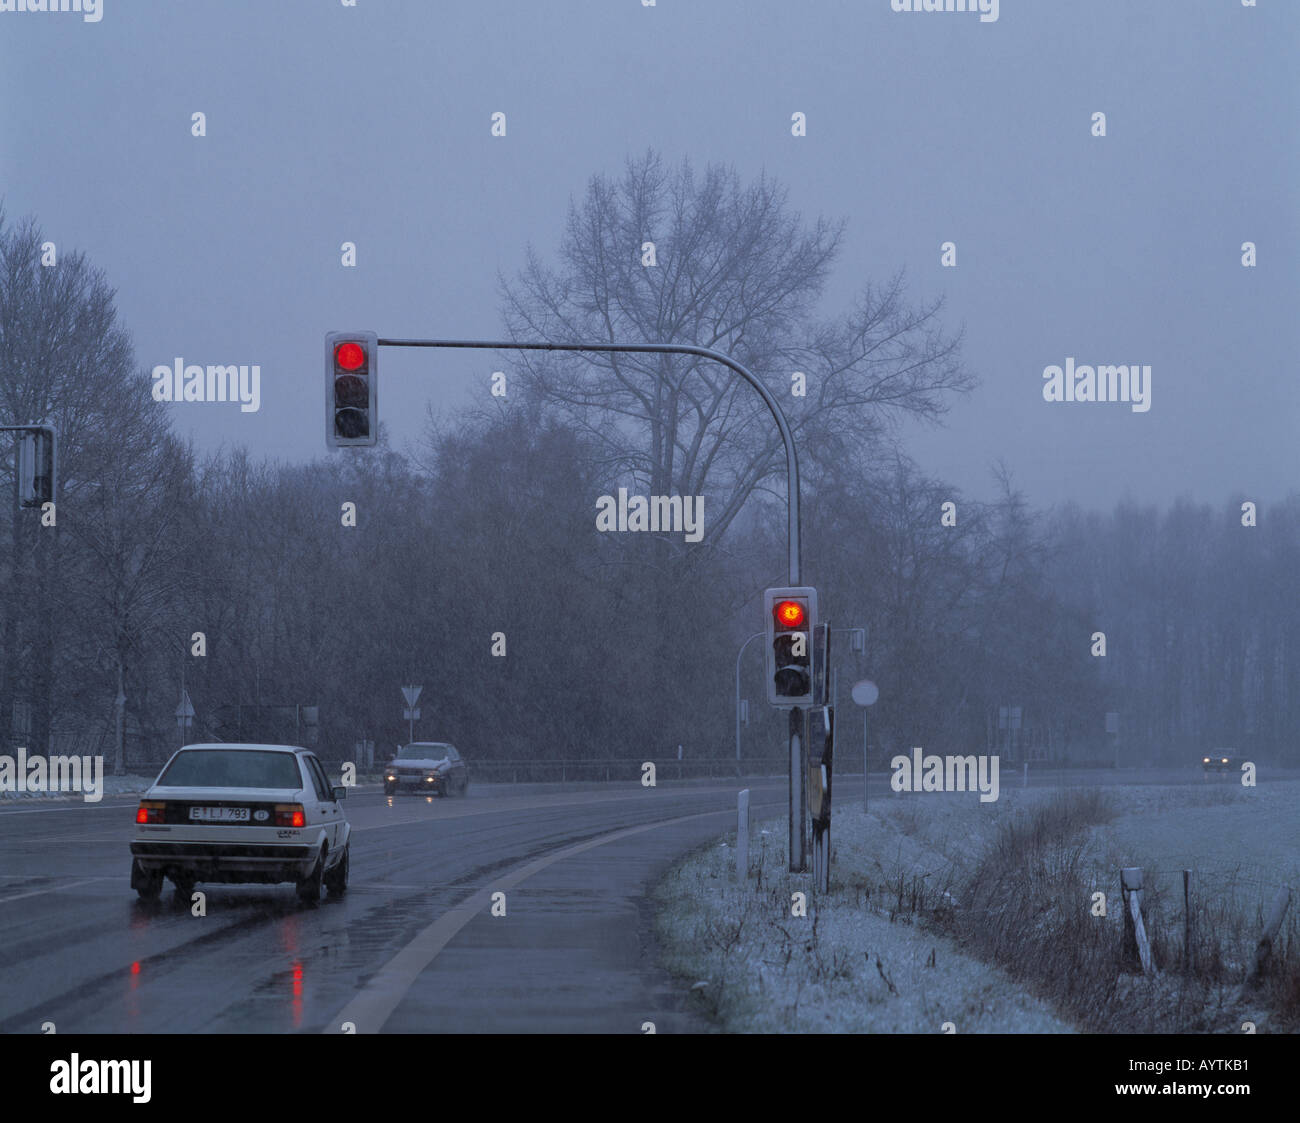 bad weather, rain, slush, sleet, country road, cars driving with lamplight during the day, traffic light showing Stock Photo